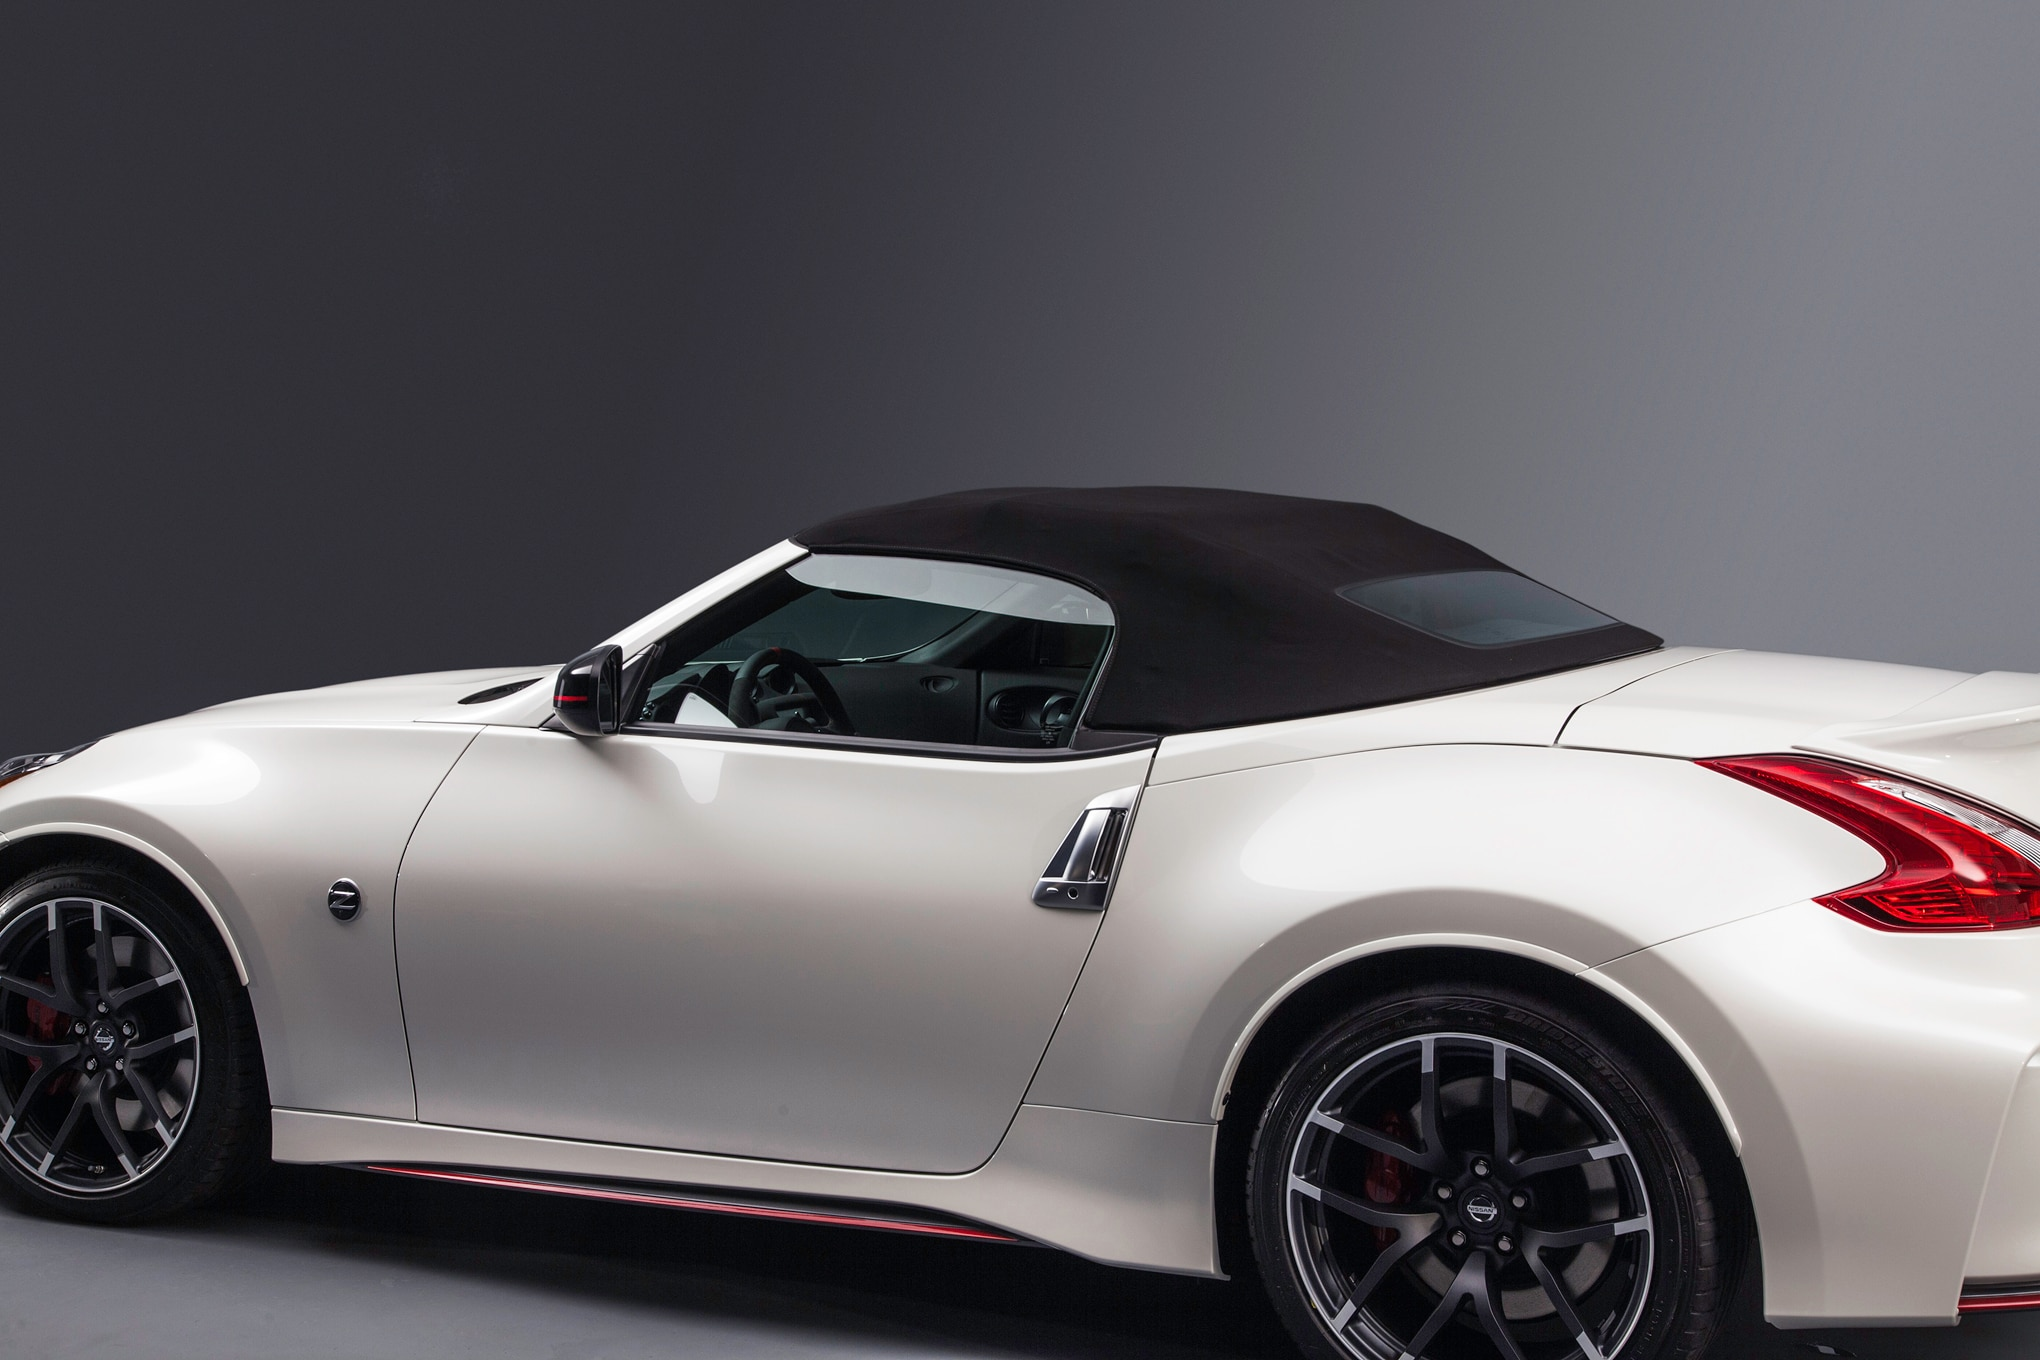 nissan 370z nismo roadster concept drops its top in chicago. Black Bedroom Furniture Sets. Home Design Ideas